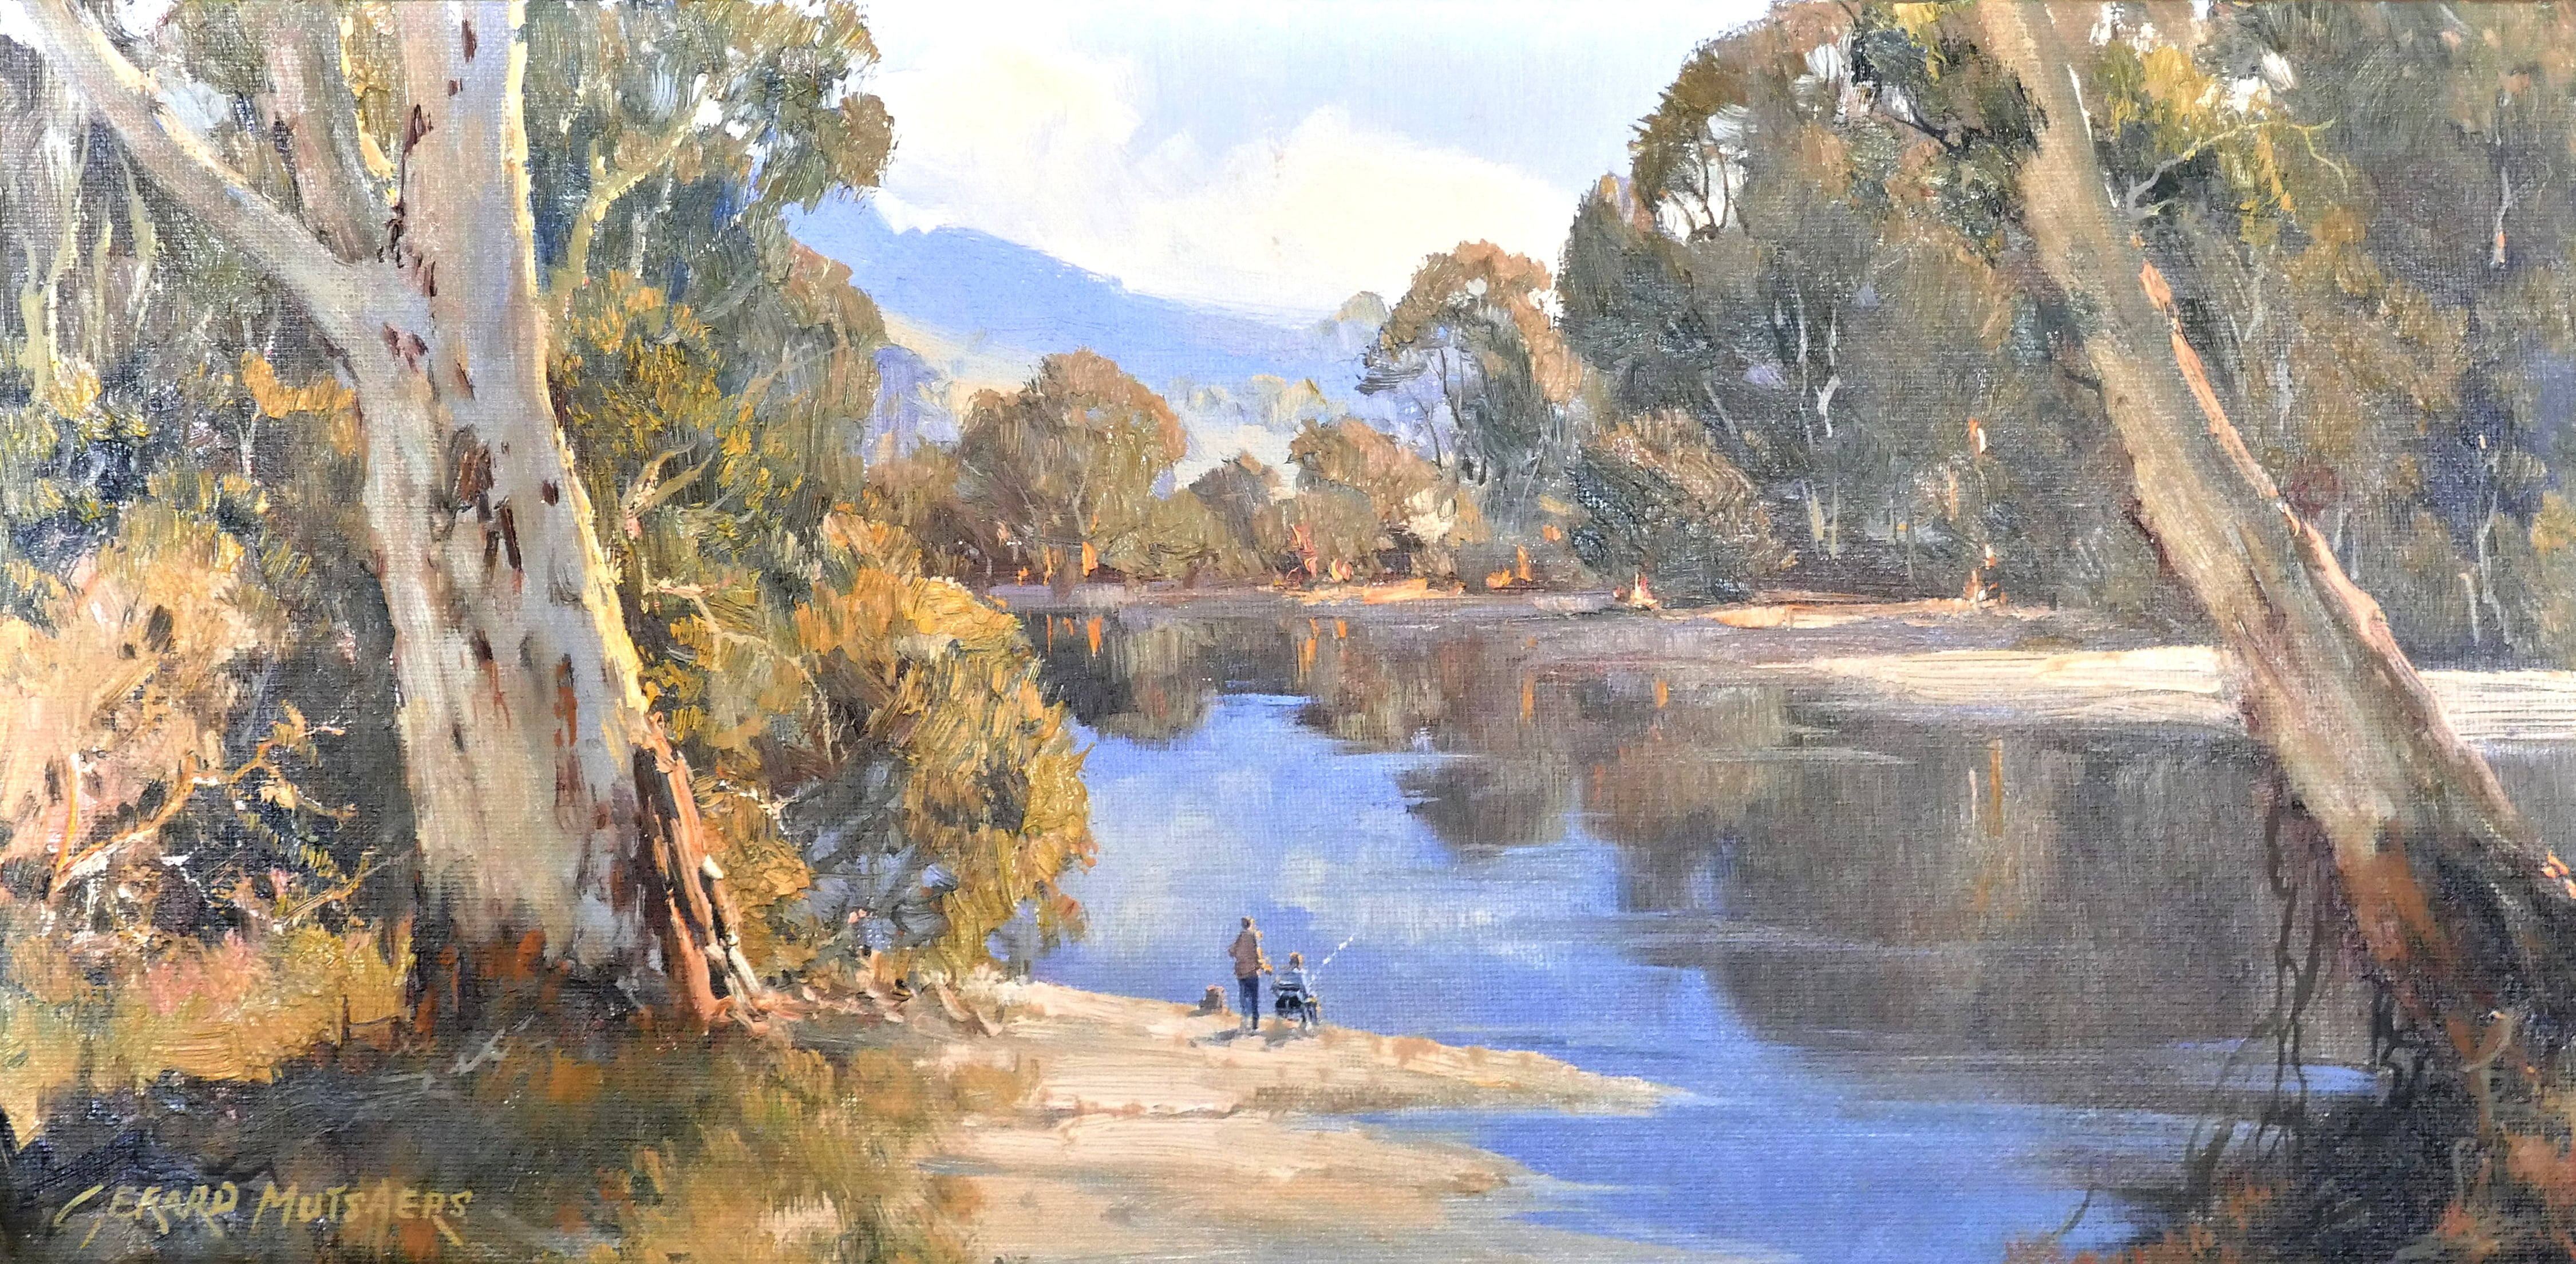 39. Fishing at the Nulla Nulla Waterhole